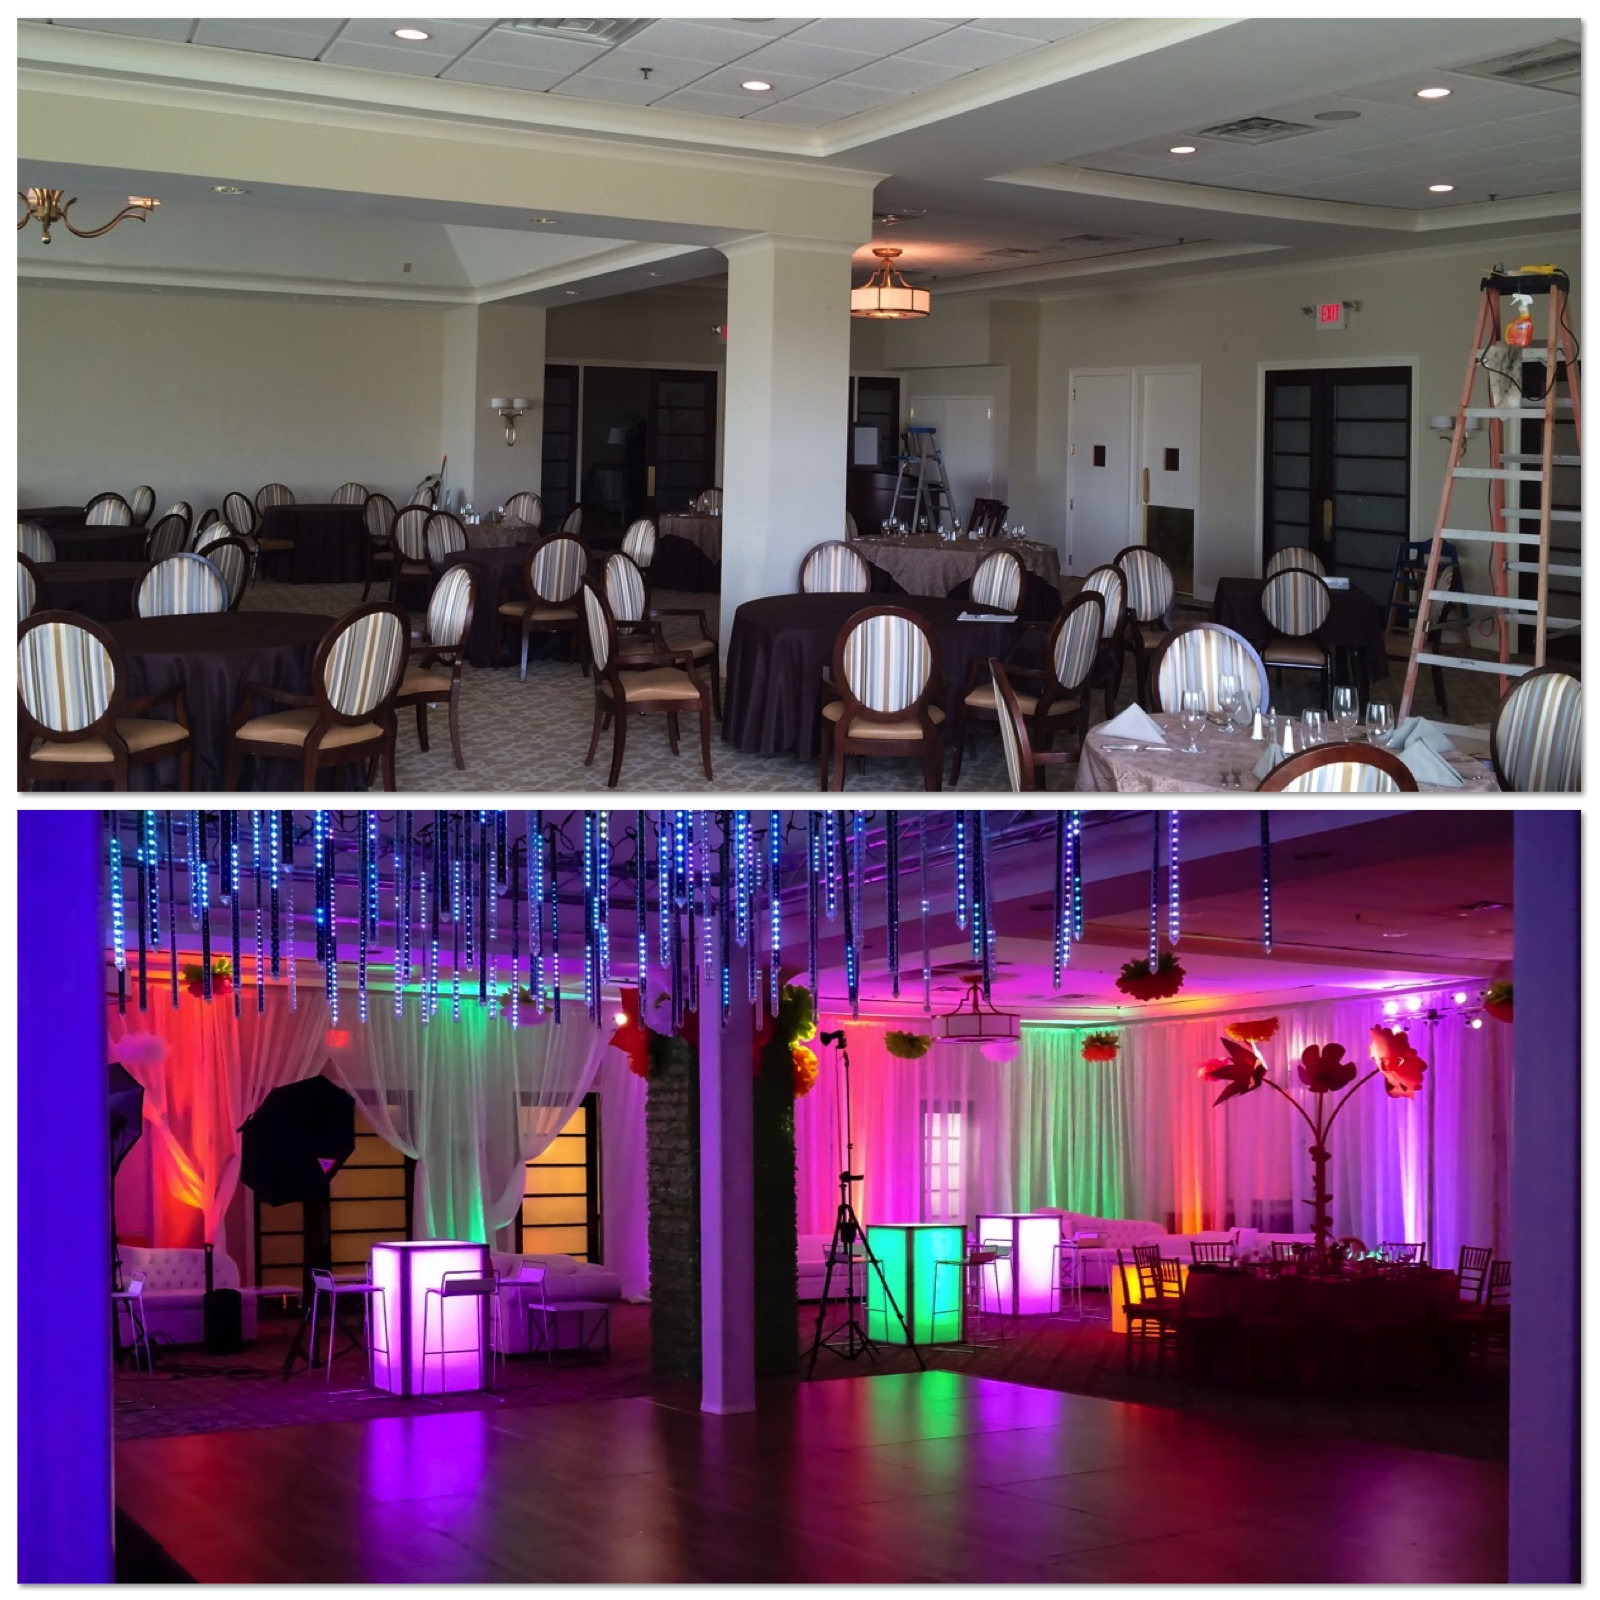 Crestmont Country Club Bat Mitzvah Design Centerpiece Before and After - Eggsotic Events NJ NYC Event Design Lighting Decor Drape Rental NJ NYC .jpg